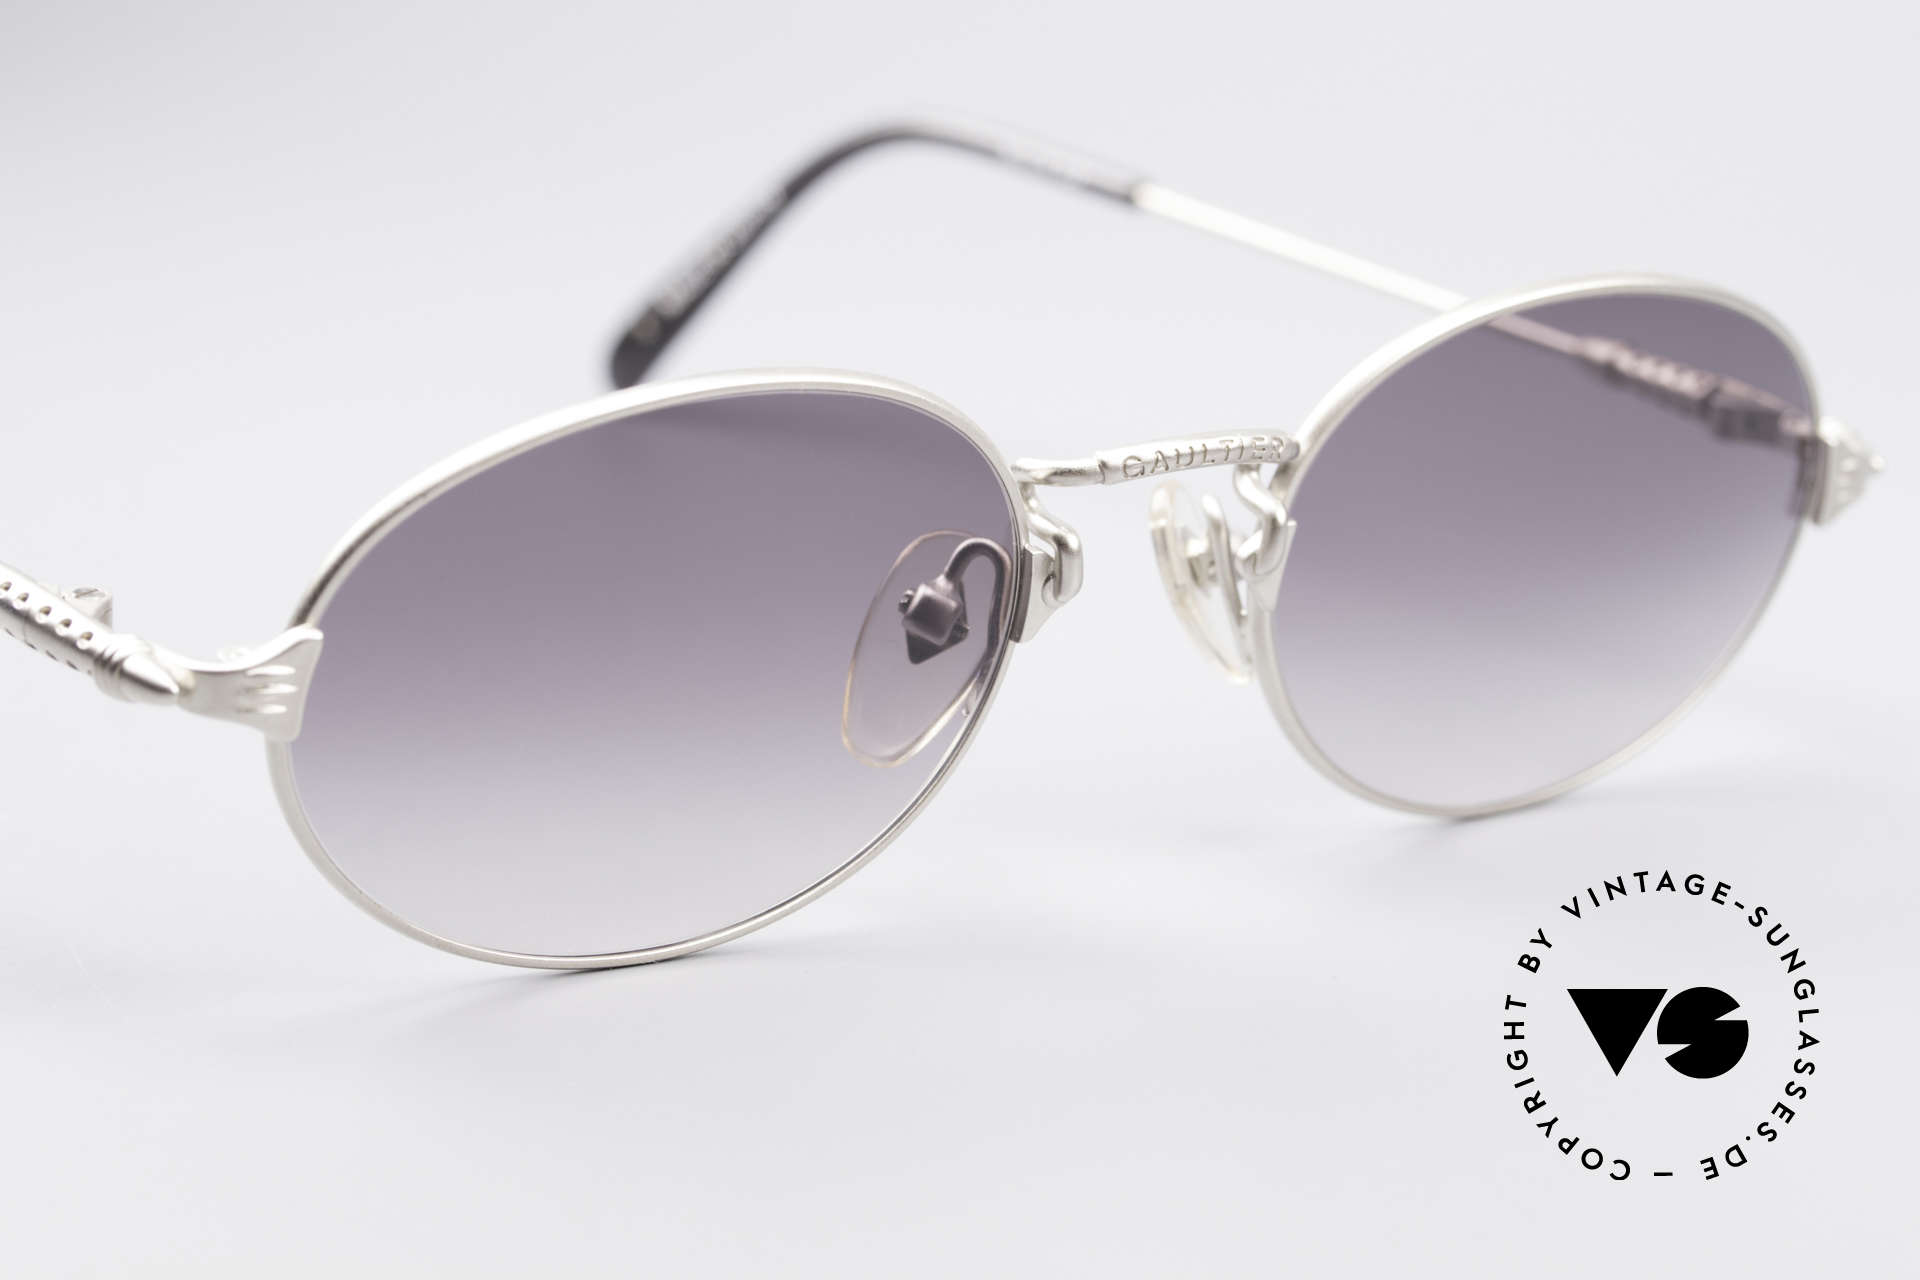 Jean Paul Gaultier 55-6108 Oval Vintage Sunglasses, unworn (like all our rare old 1990's designer sunglasses), Made for Men and Women